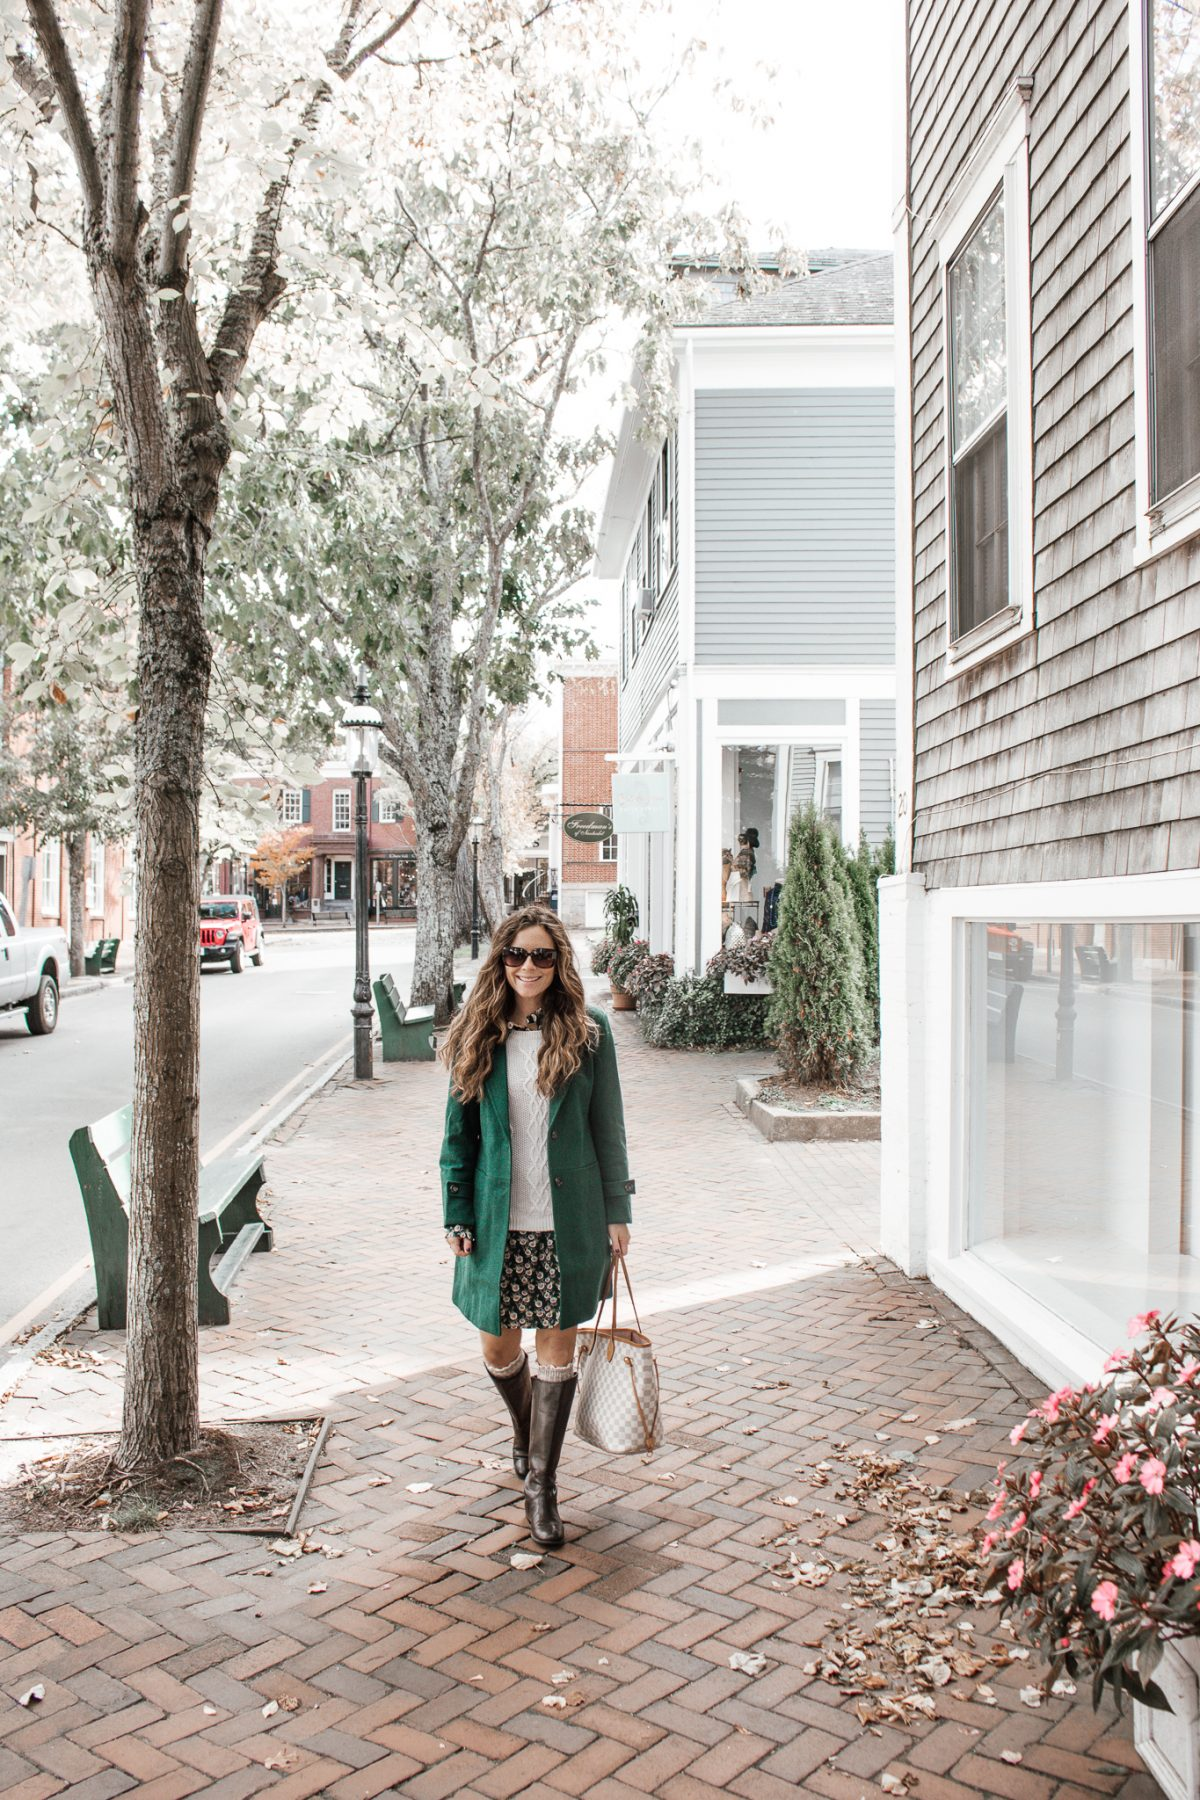 Smiling woman wearing a green peacoat over a sweater and dress on the street in Nantucket